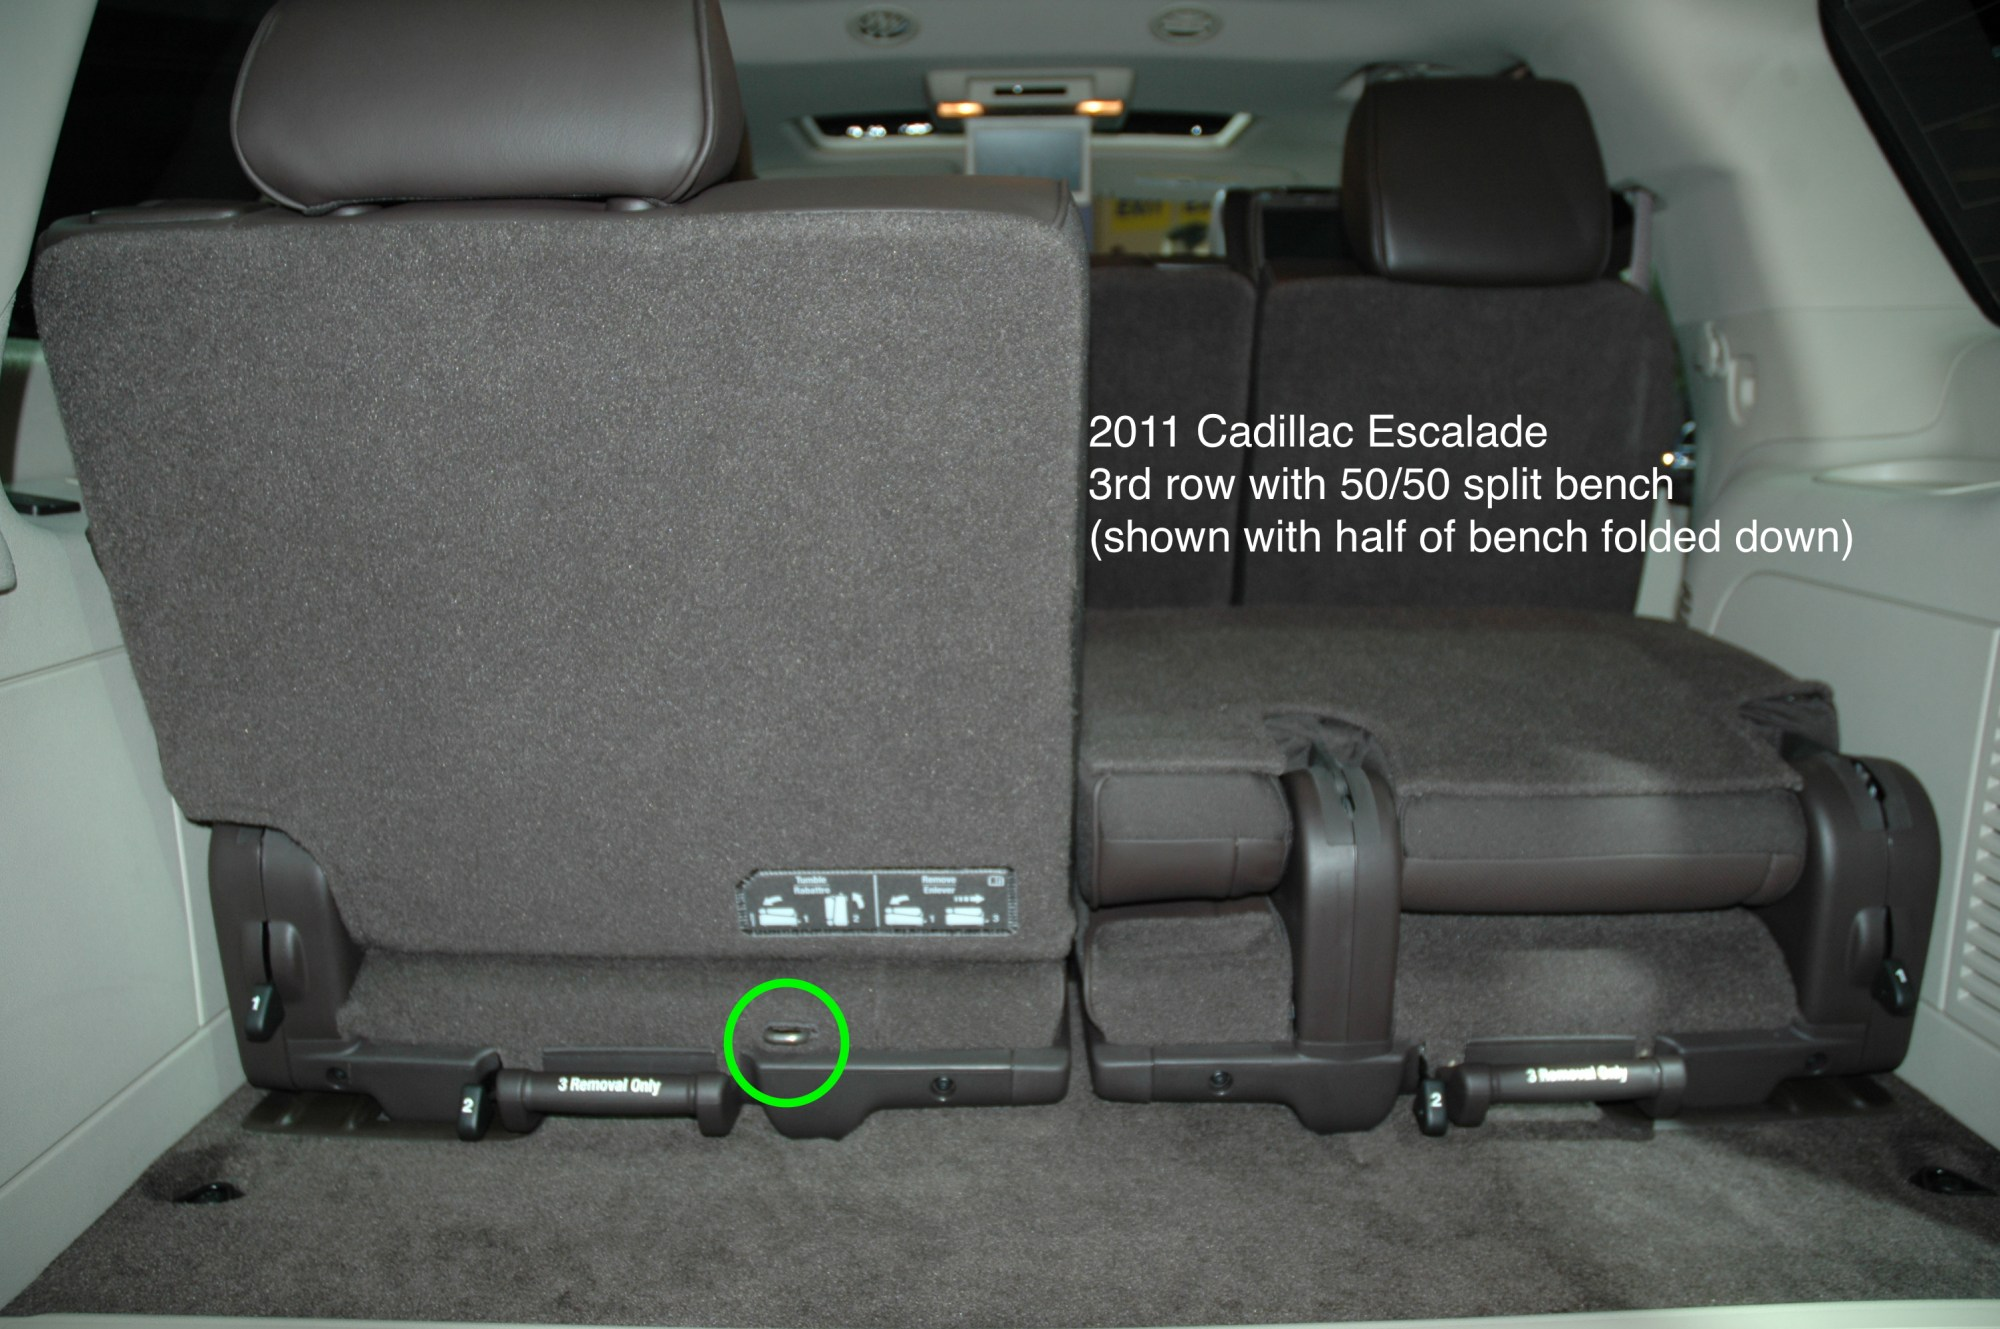 hight resolution of 2011 cadillac escalade chevrolet suburban gmc yukon showing only 1 tether anchor for 3rd row